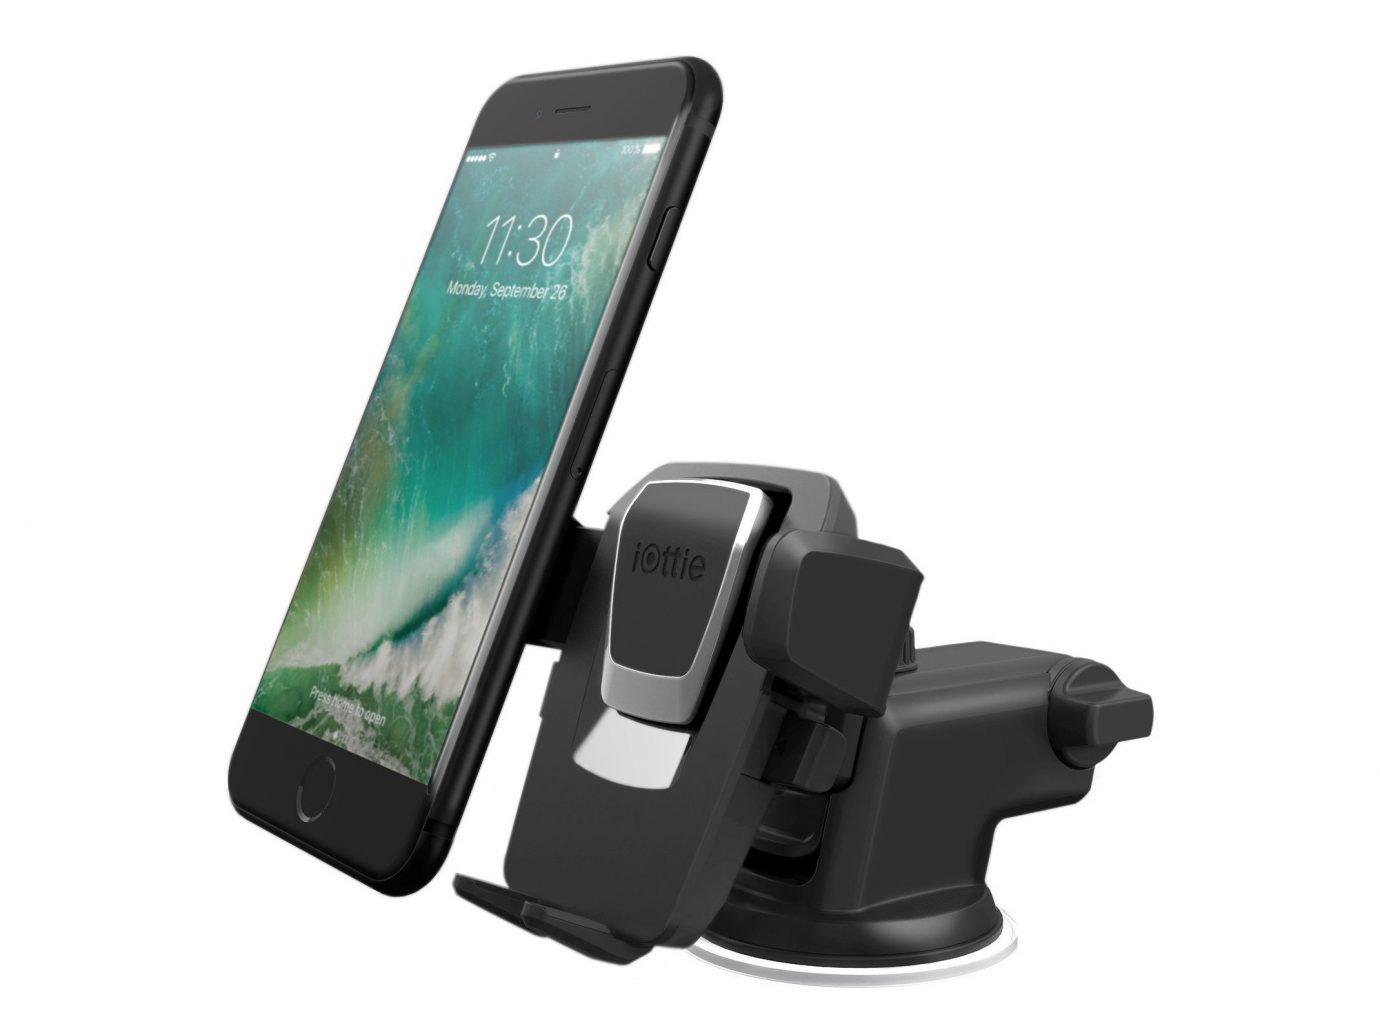 Travel Tips communication device gadget technology mobile phone electronics electronic device product product design hardware smartphone multimedia telephony telephone portable media player mobile phone accessories